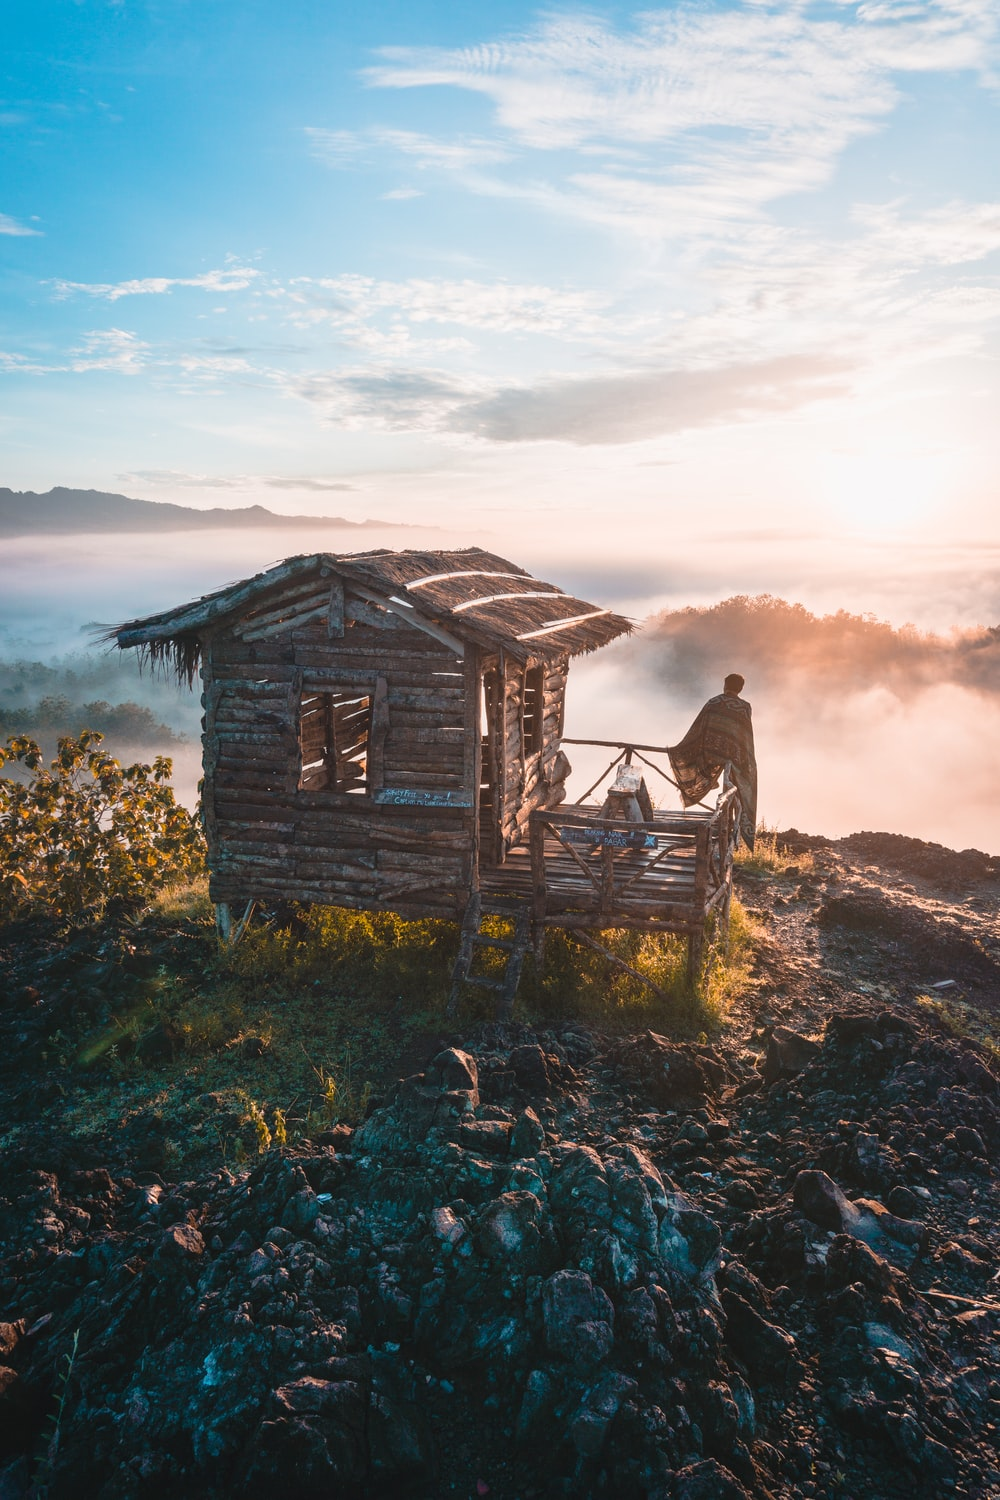 person in wooden cabin on hill